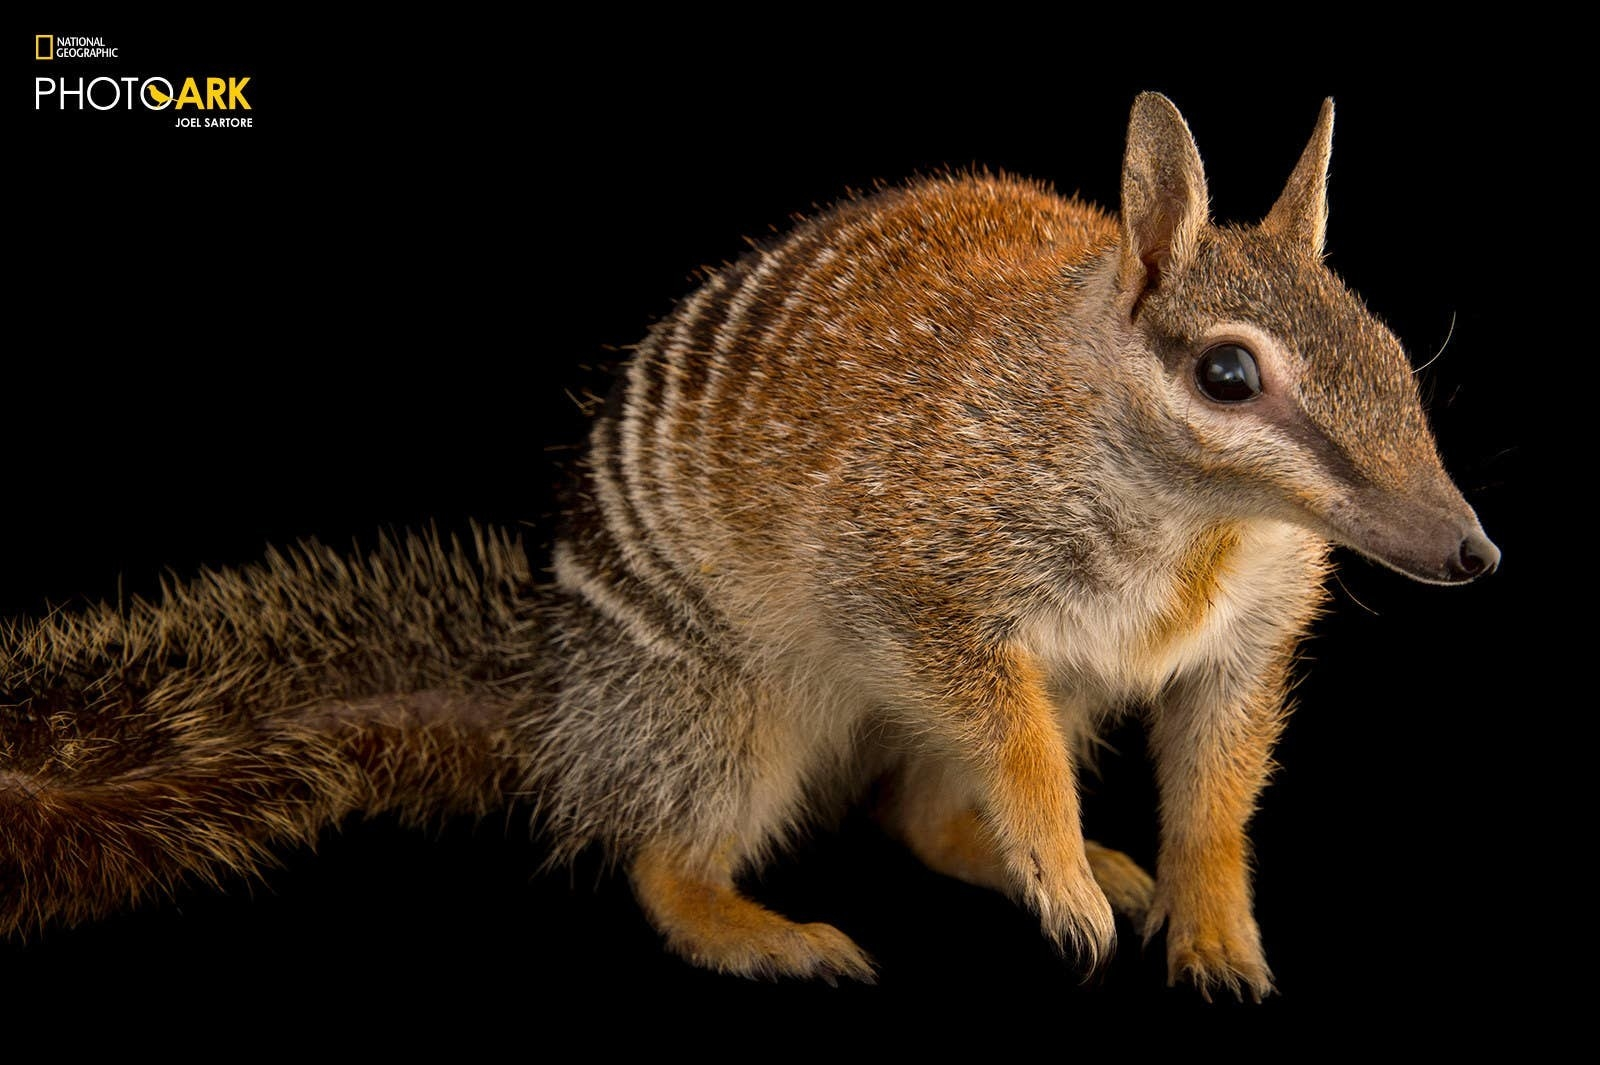 A small furry mammal on a black background